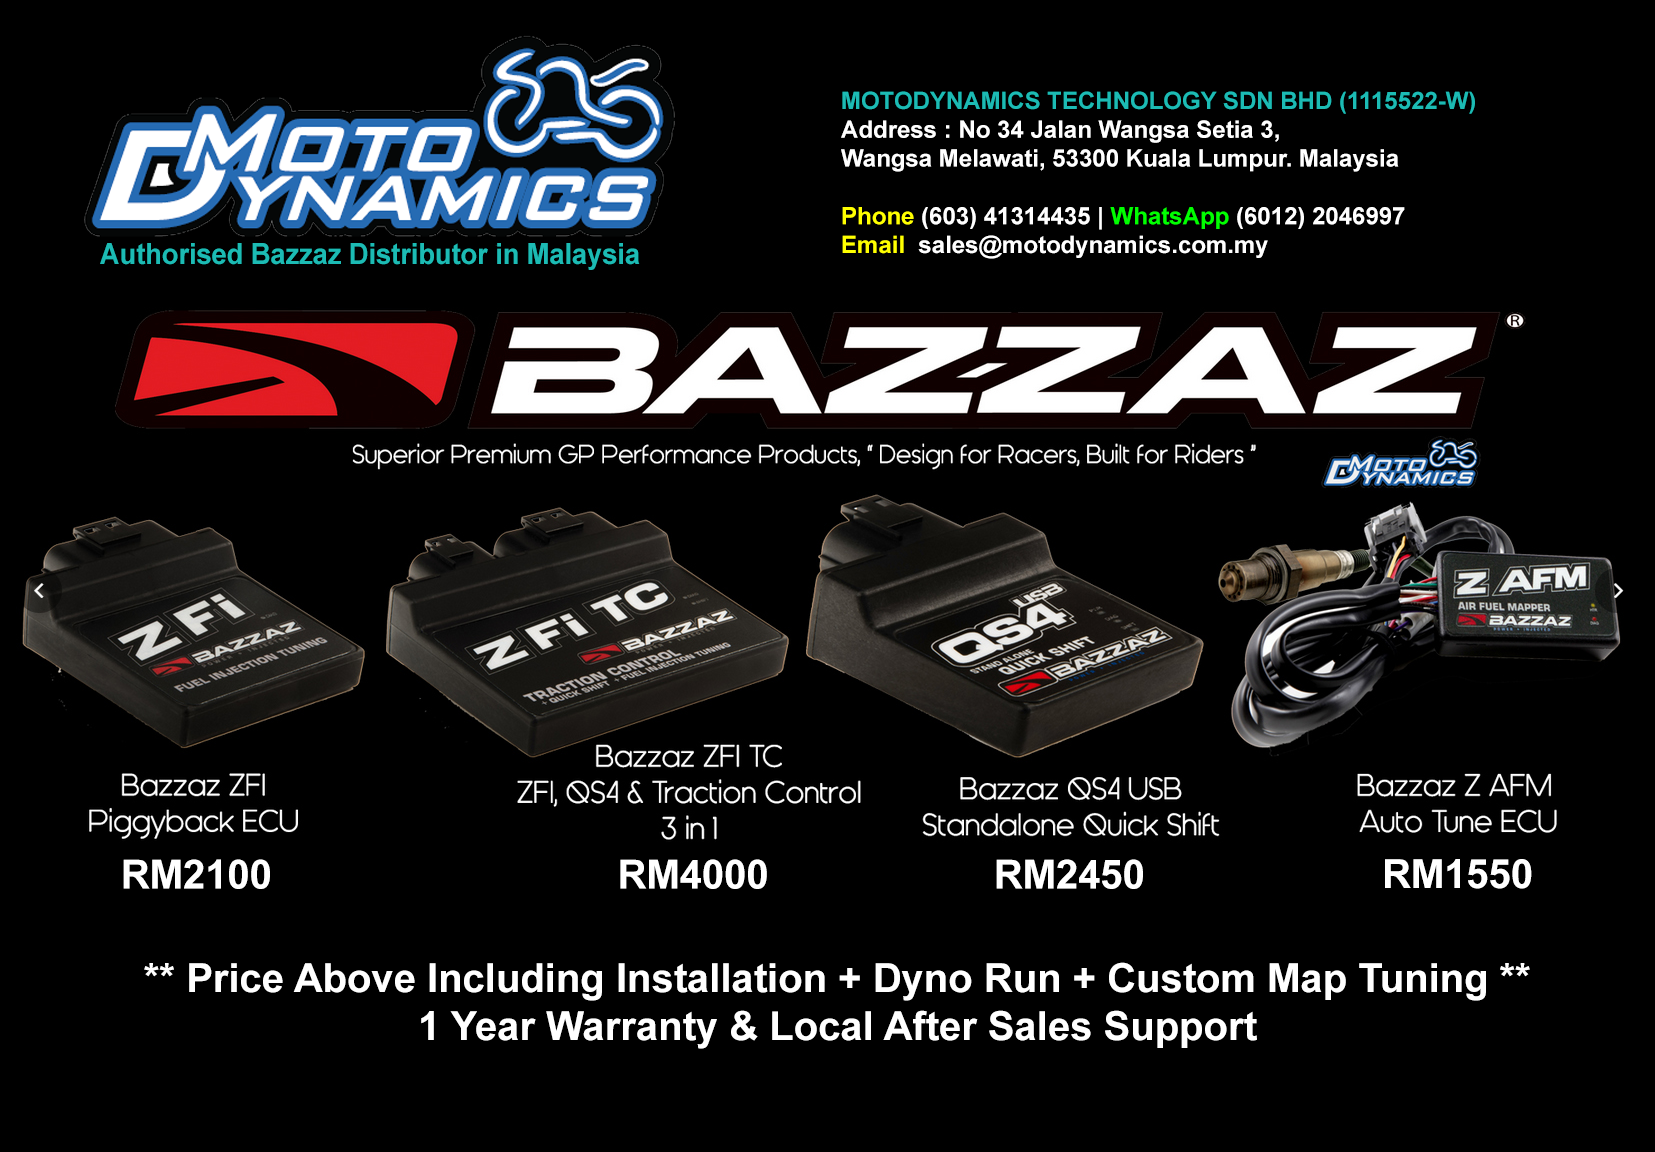 MotoDynamics Malaysia +603-41314435 specialize in DYNO and Tuning